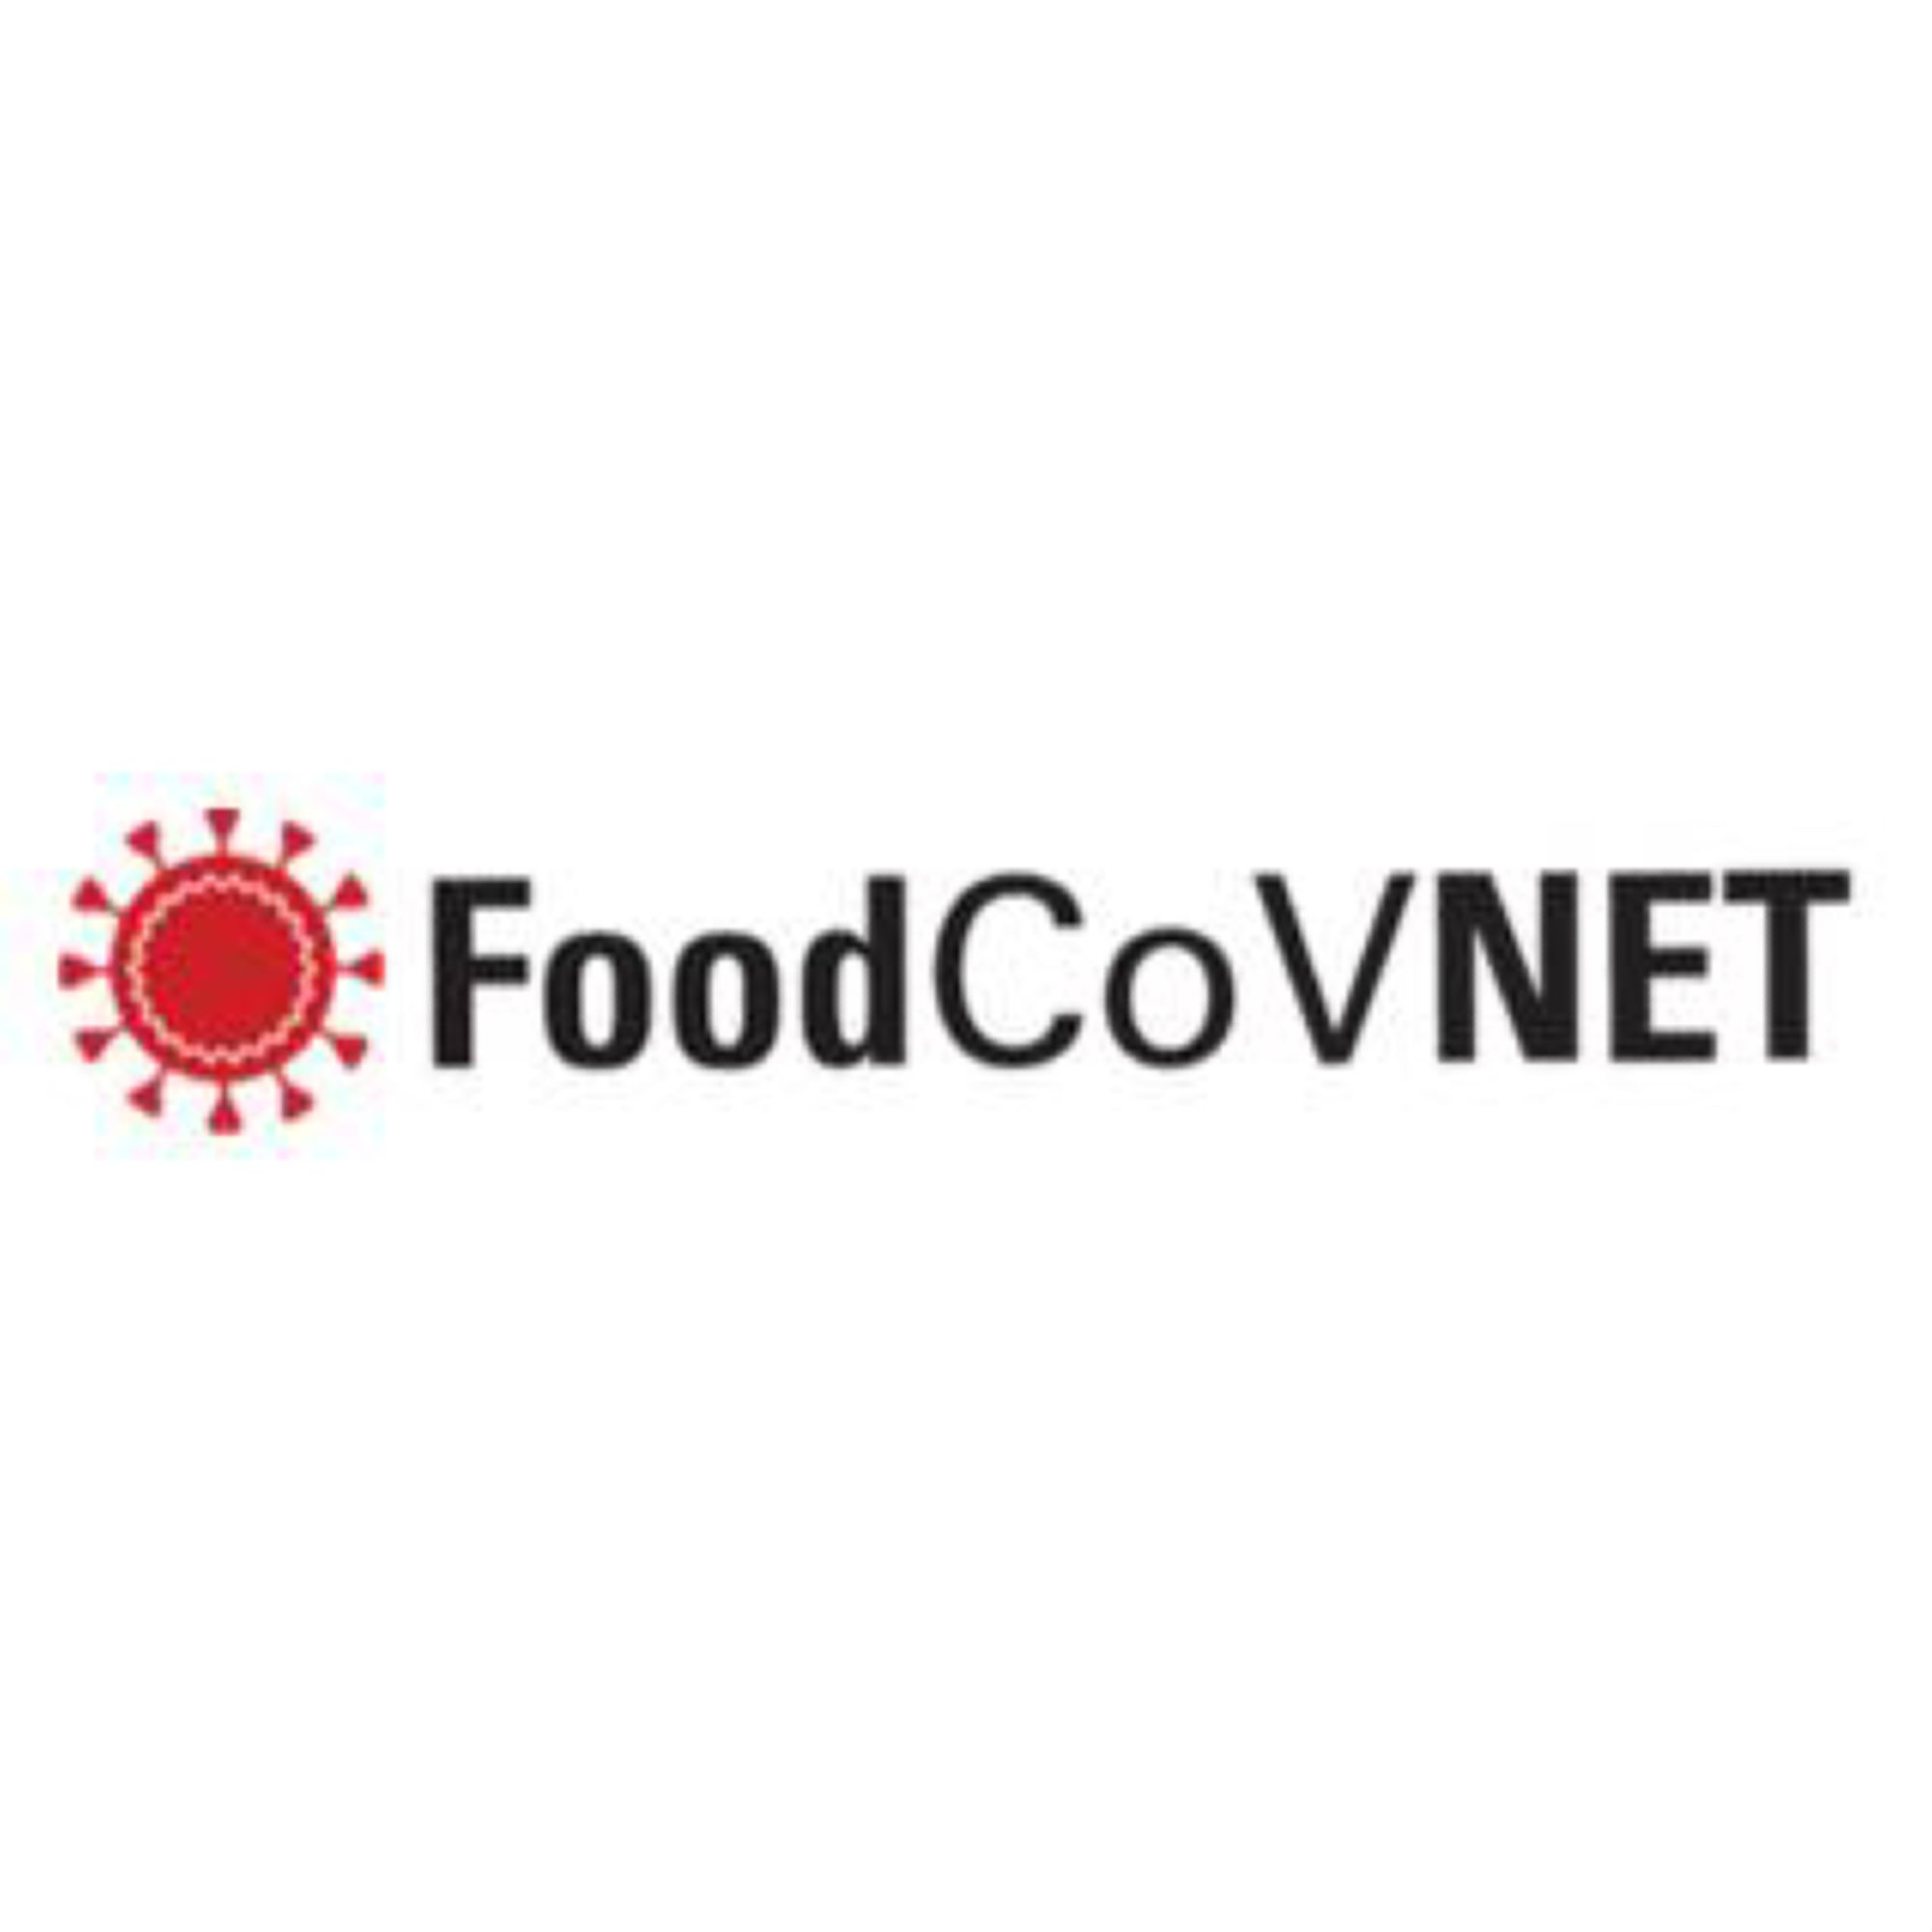 testo_food_blog_logo_foodcoVNET.jpg